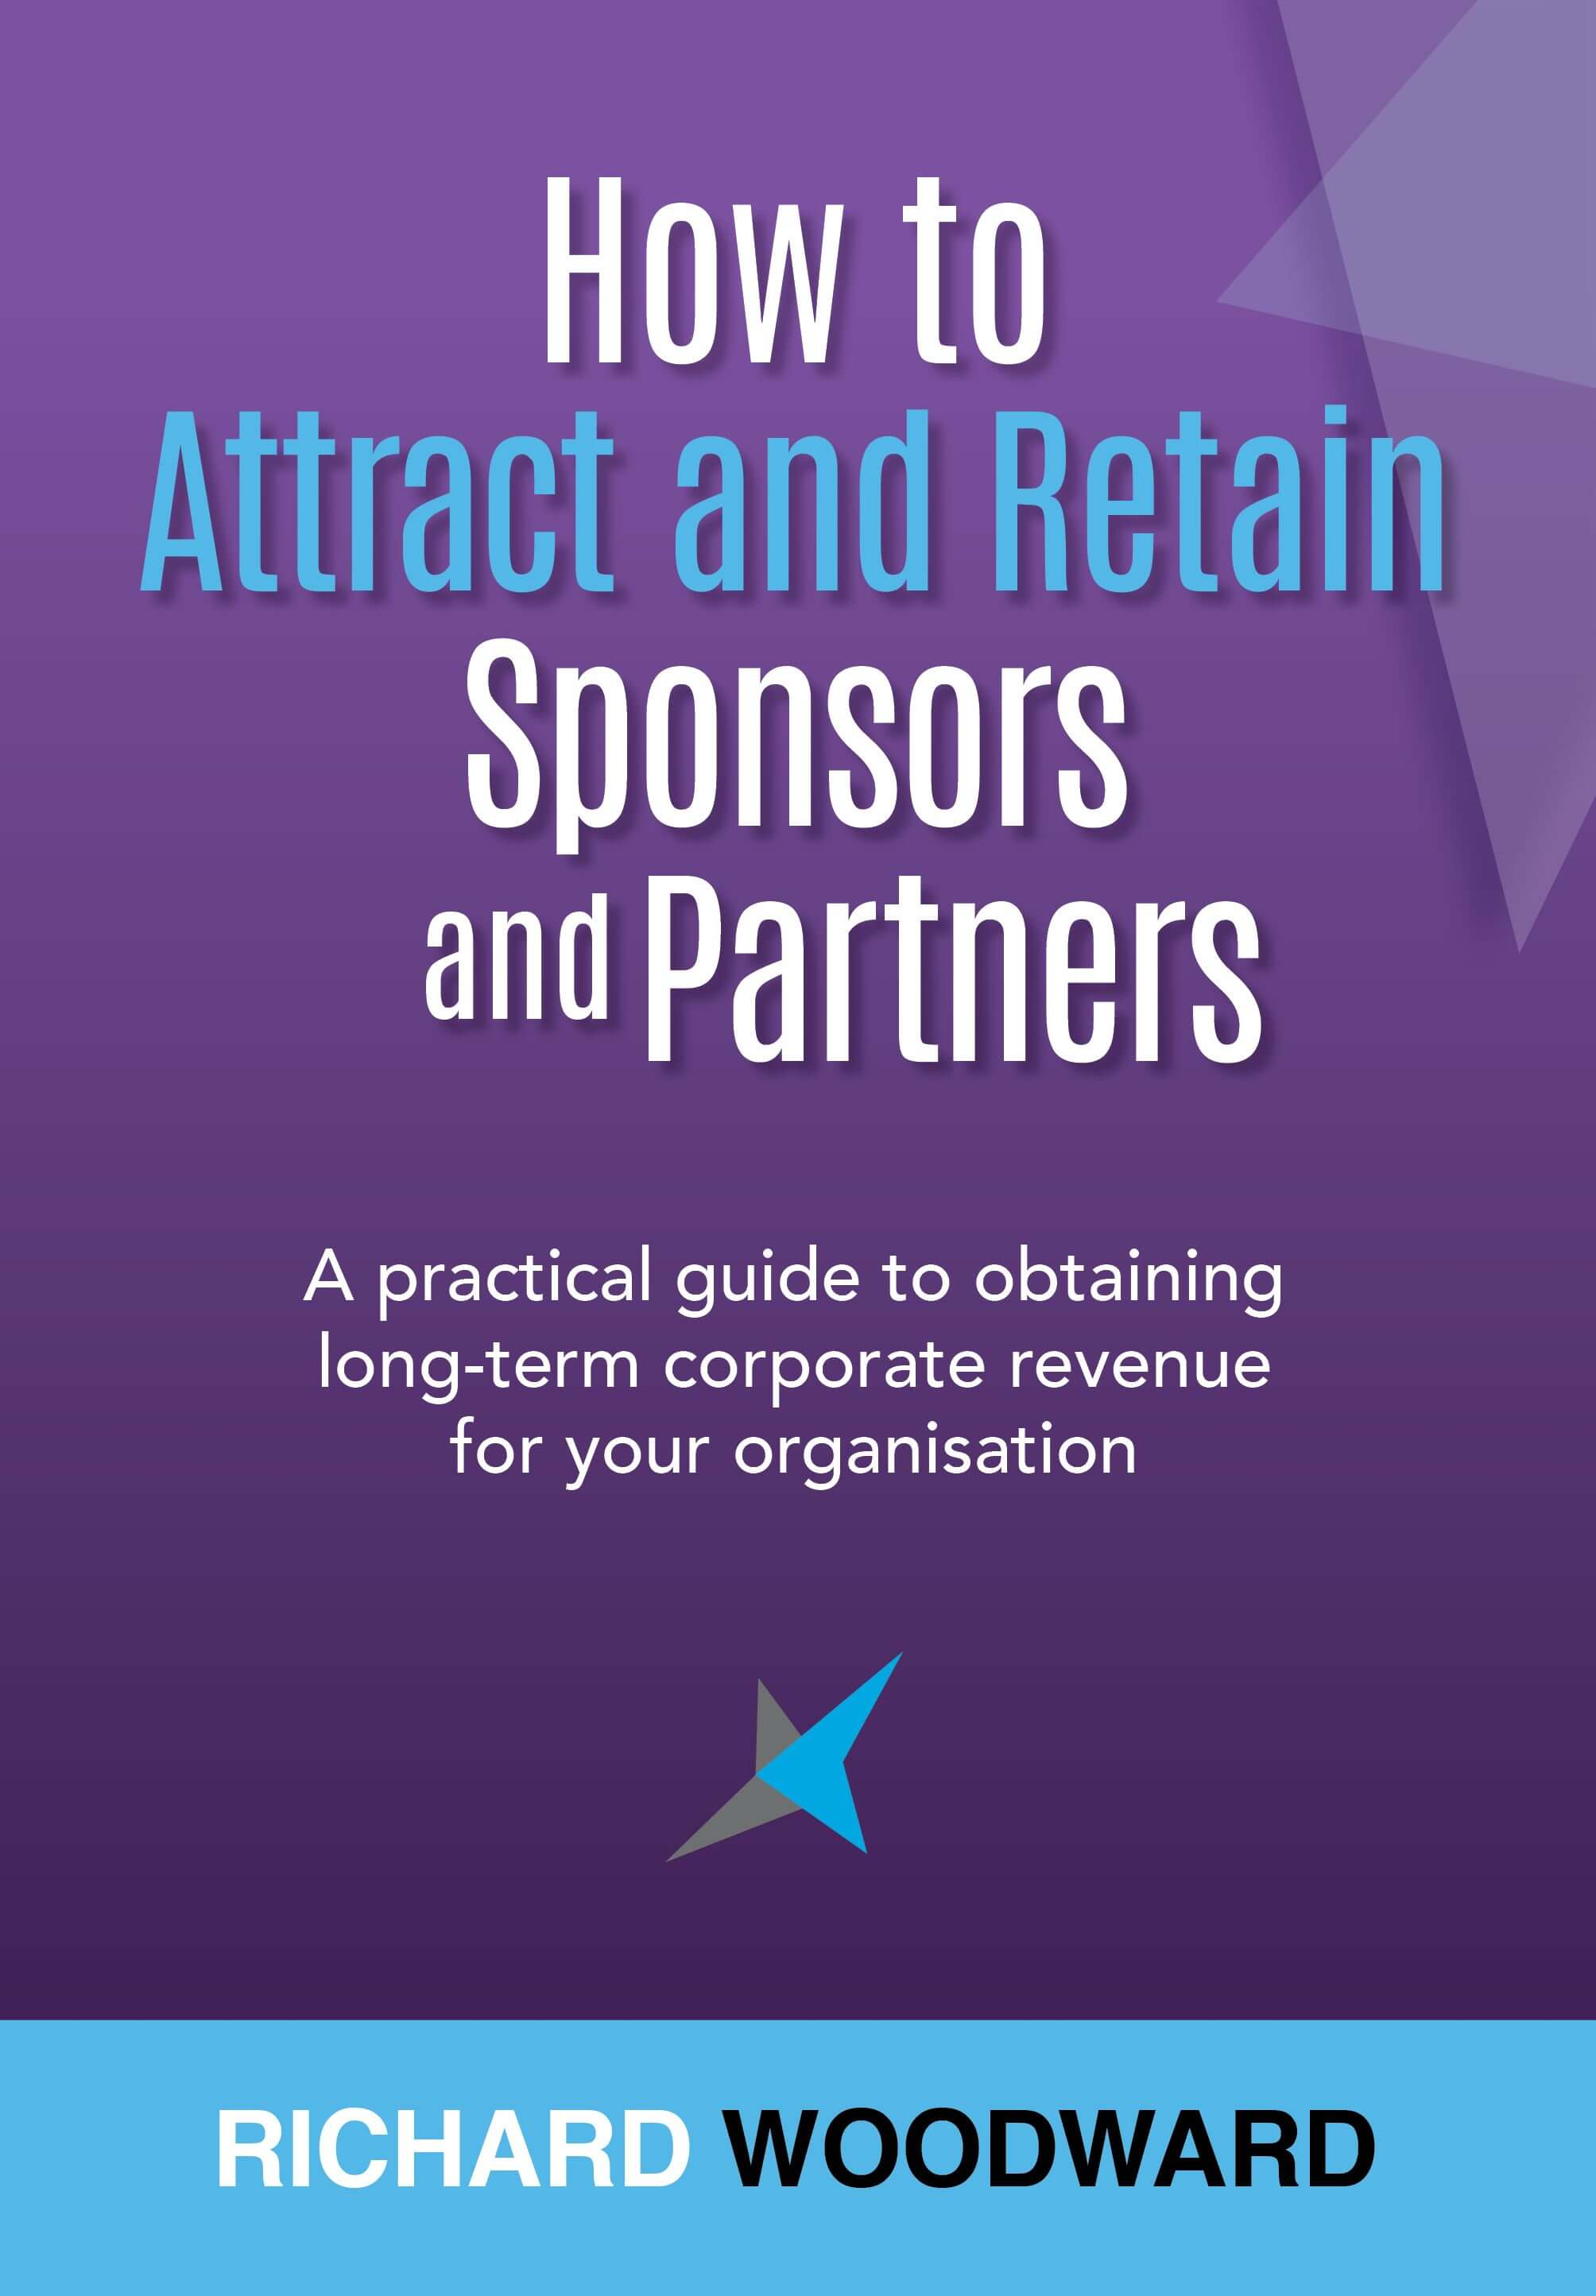 How to attract and retain sponsors and partners